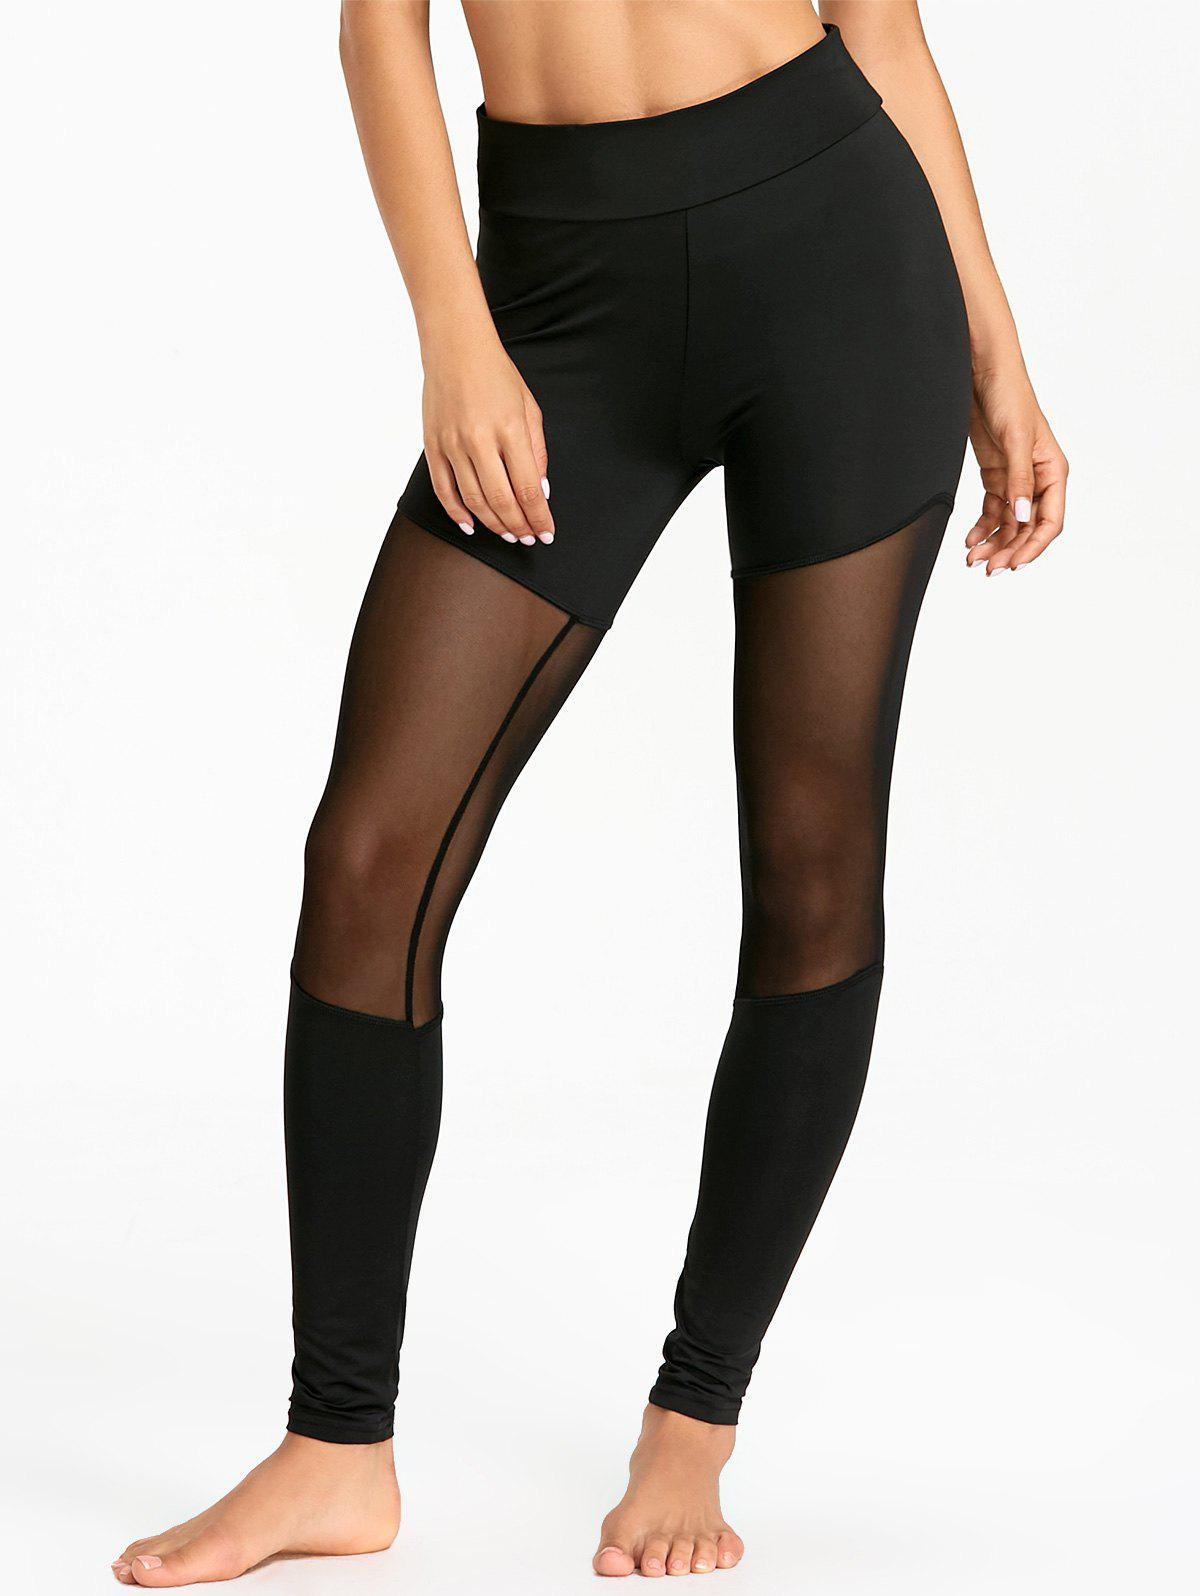 Affordable Sheer Mesh Insert Sports Tights